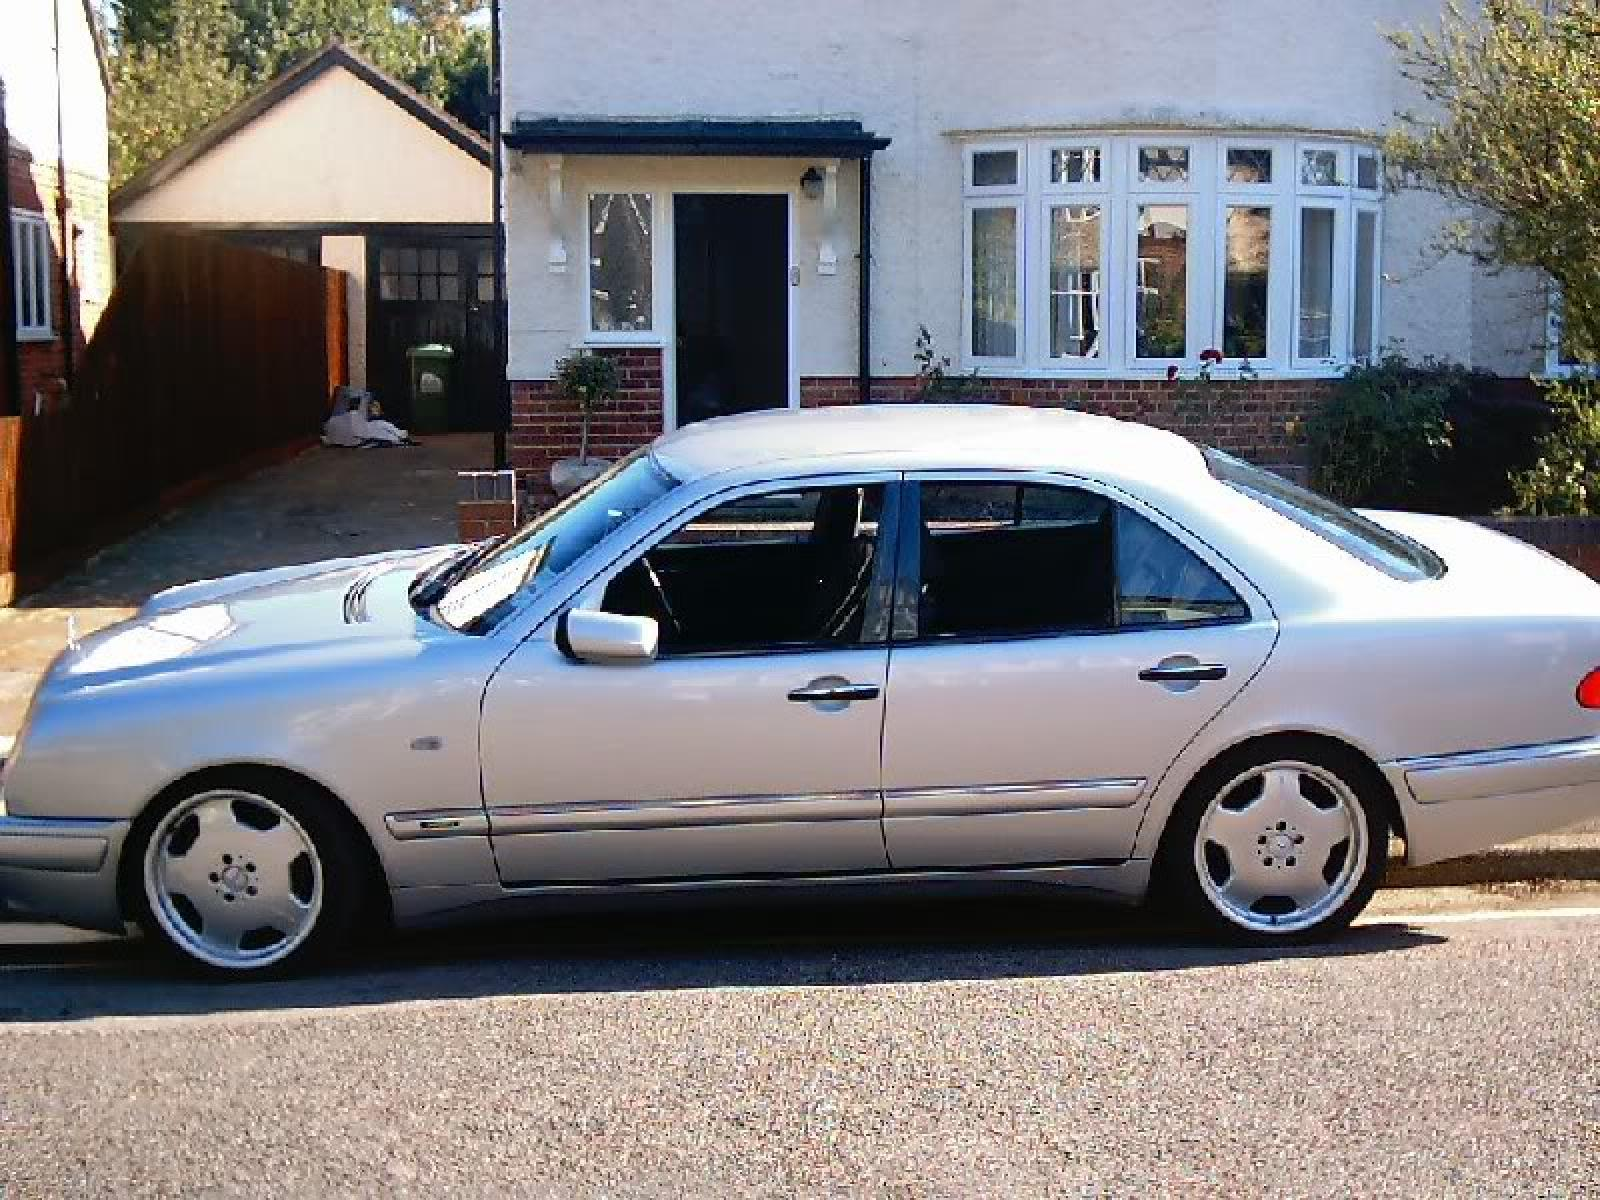 benz cars for saloon mercedes amg lot auctions sale ref buying